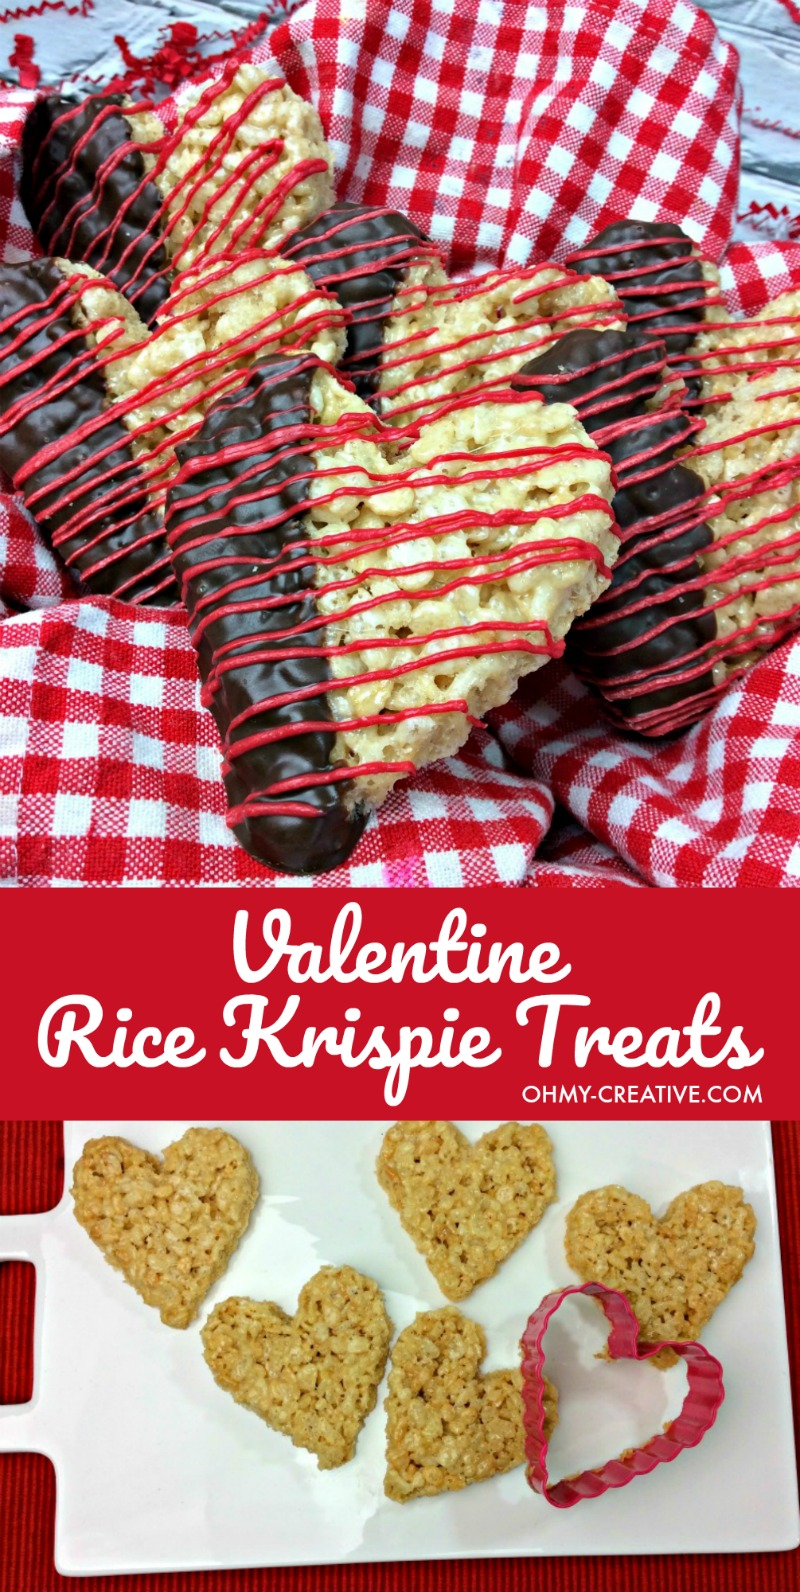 Valentine's Day Rice Krispie Treats | OHMY-CREATIVE.COM | Heart Shaped Rice Krispie Treats | Homemade Rice Krispie Treats | Dipped Rice Krispie Treats | Cute Valentine's Day Ideas